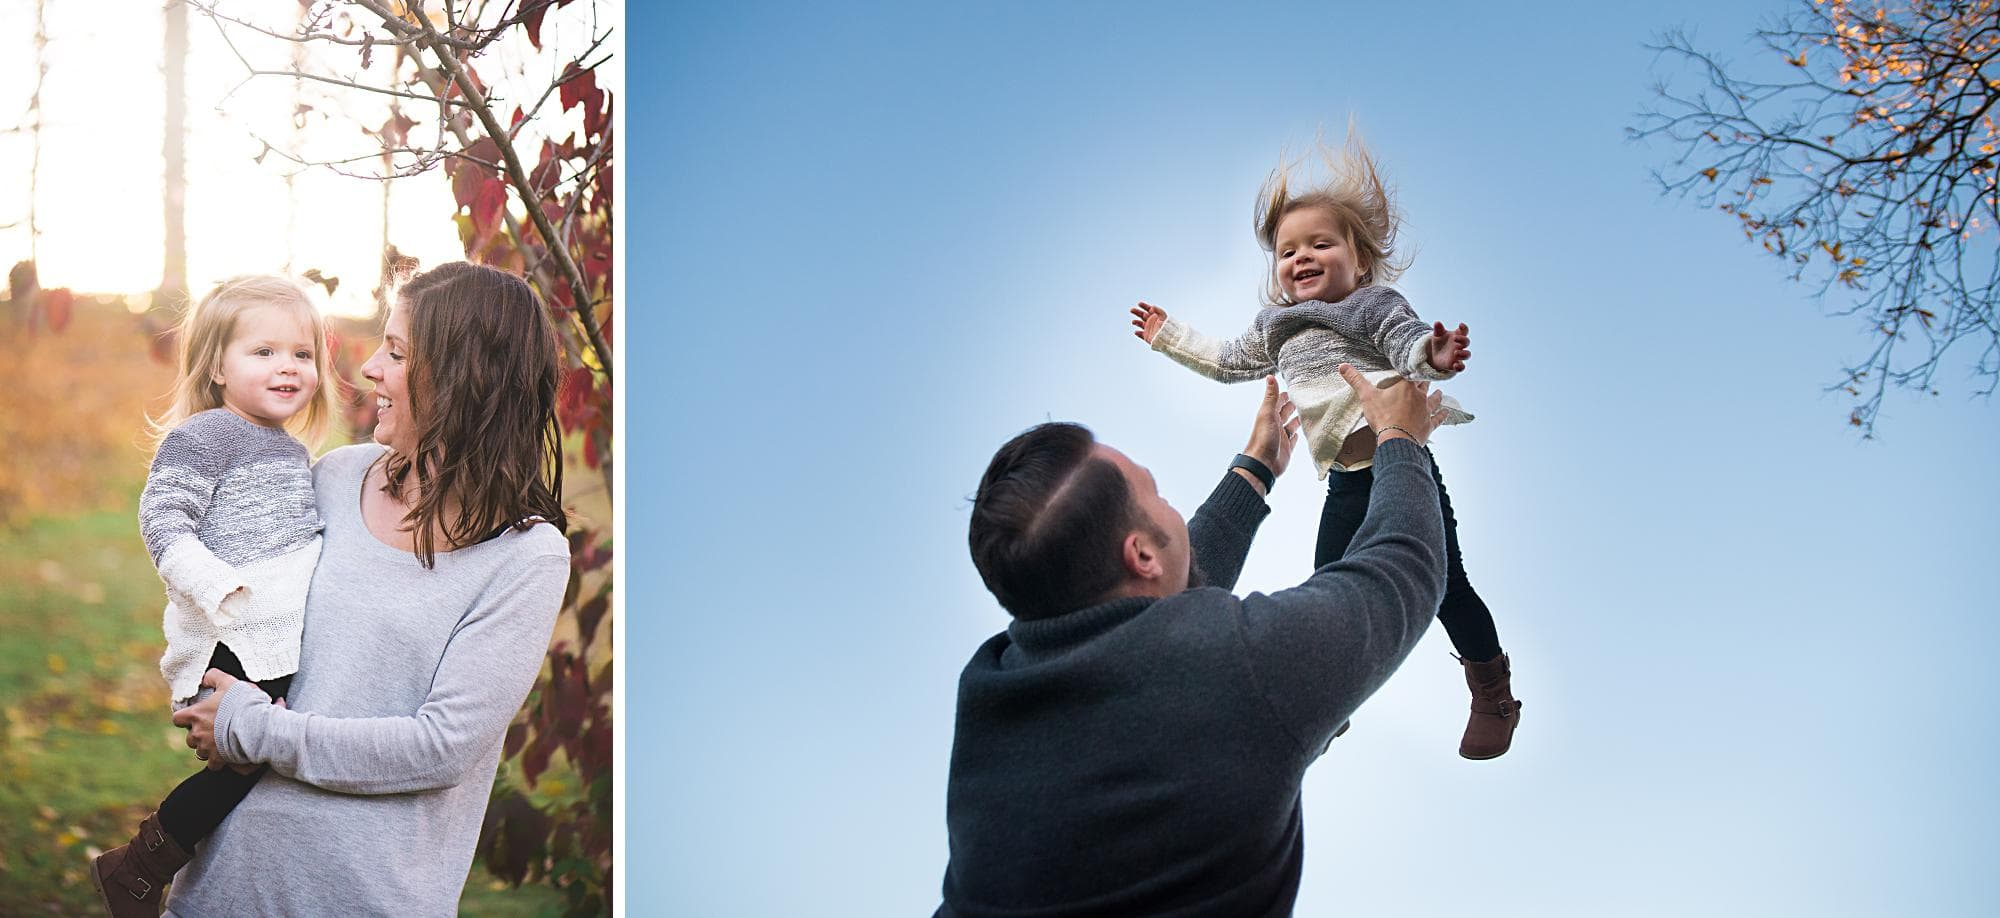 Dad throwing young daughter in the air during family photos